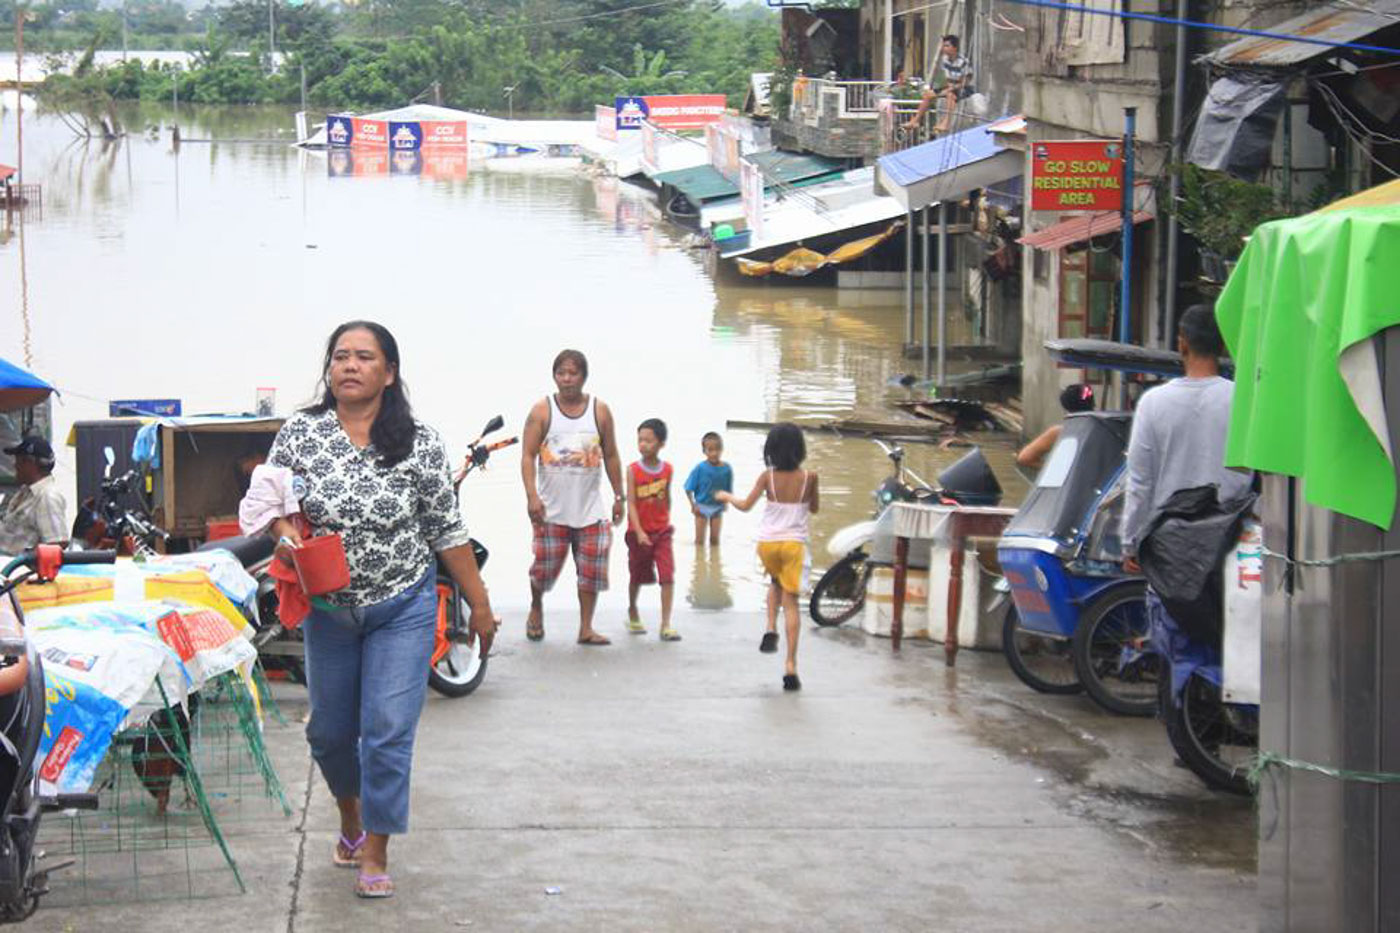 SUBMERGED. Houses in low-lying areas in Tuguegarao is flooded due to the swollen Pinacanauan River. Photo courtesy of Cagayan PIO